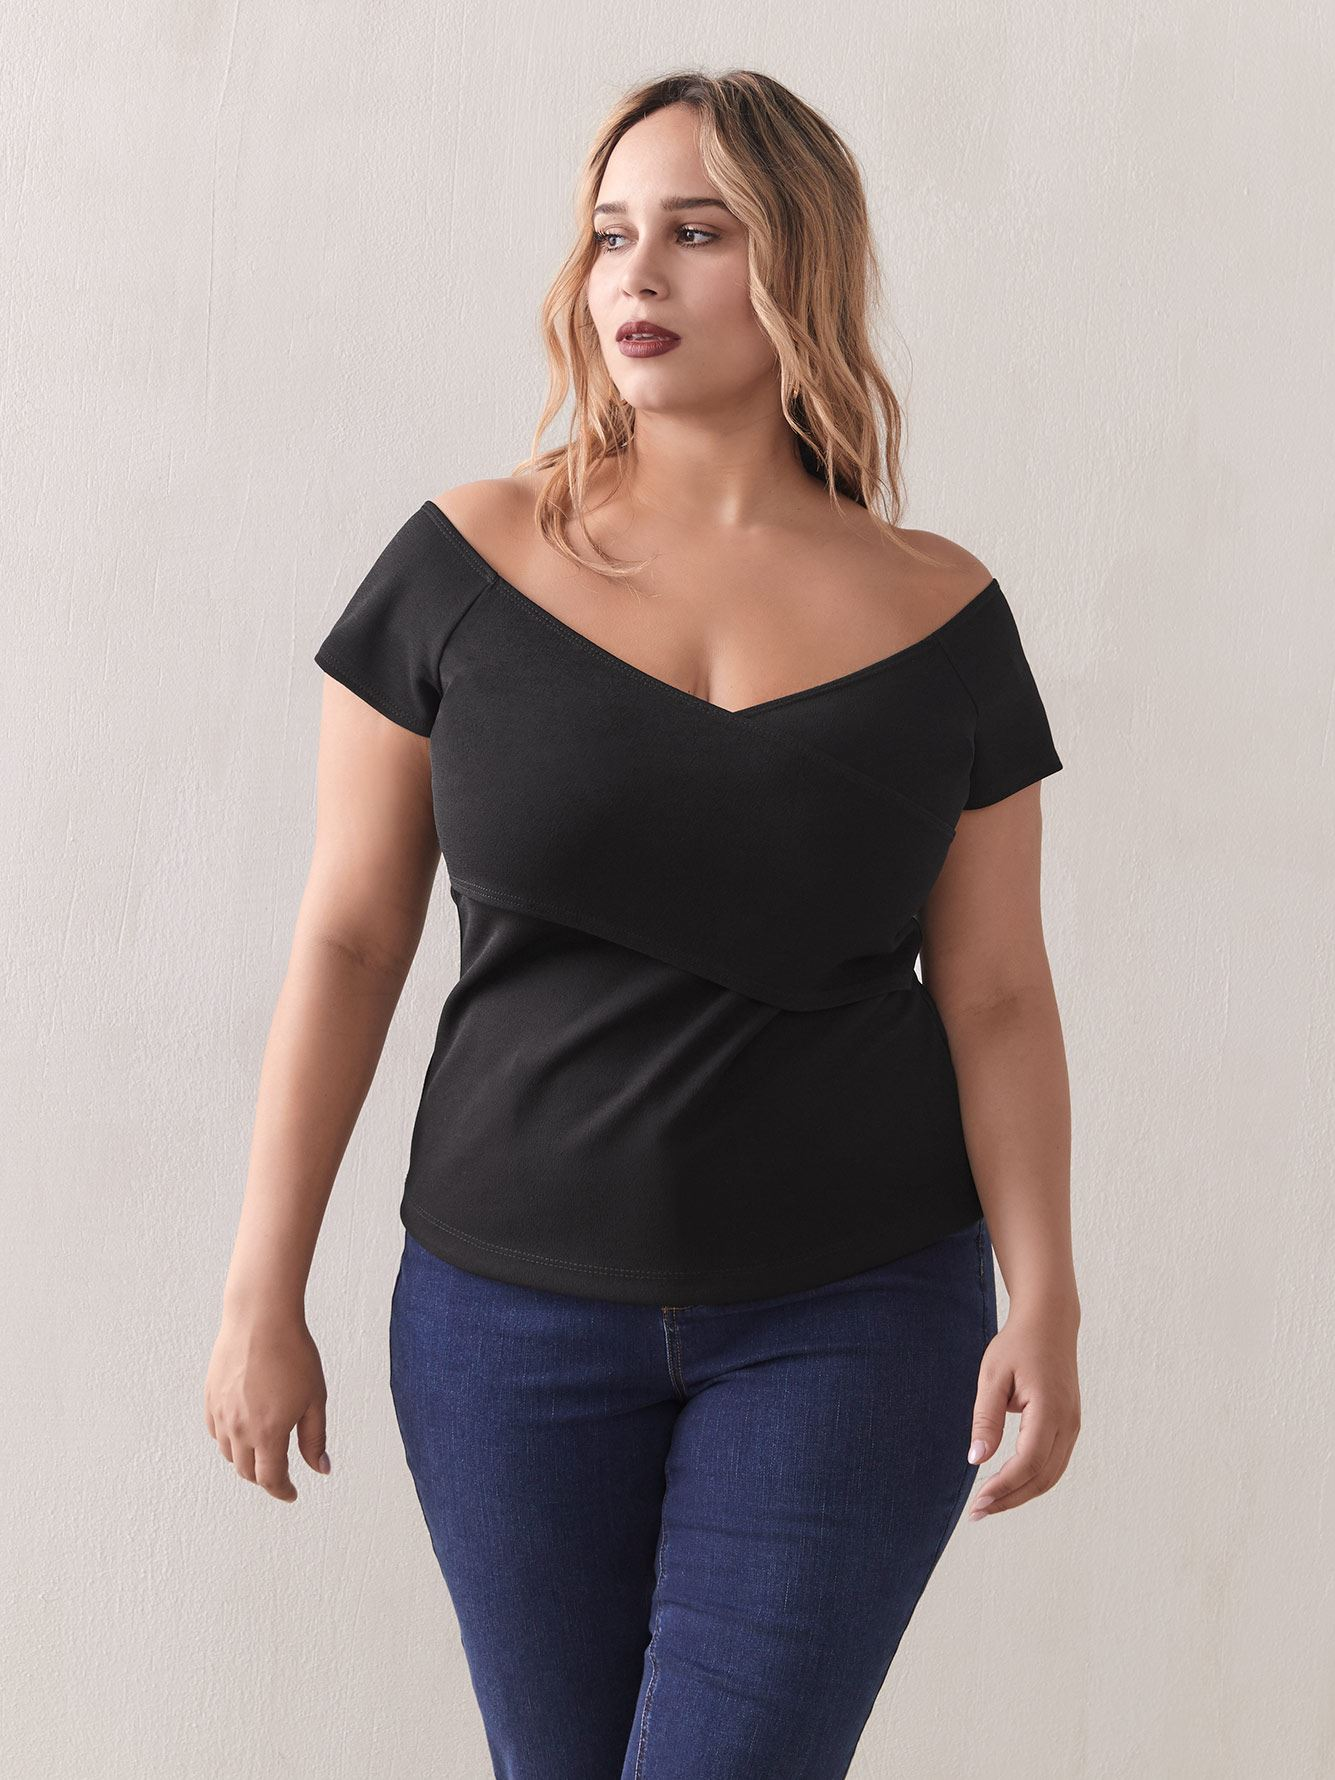 Off-The-Shoulder Crisscross Top - Addition Elle